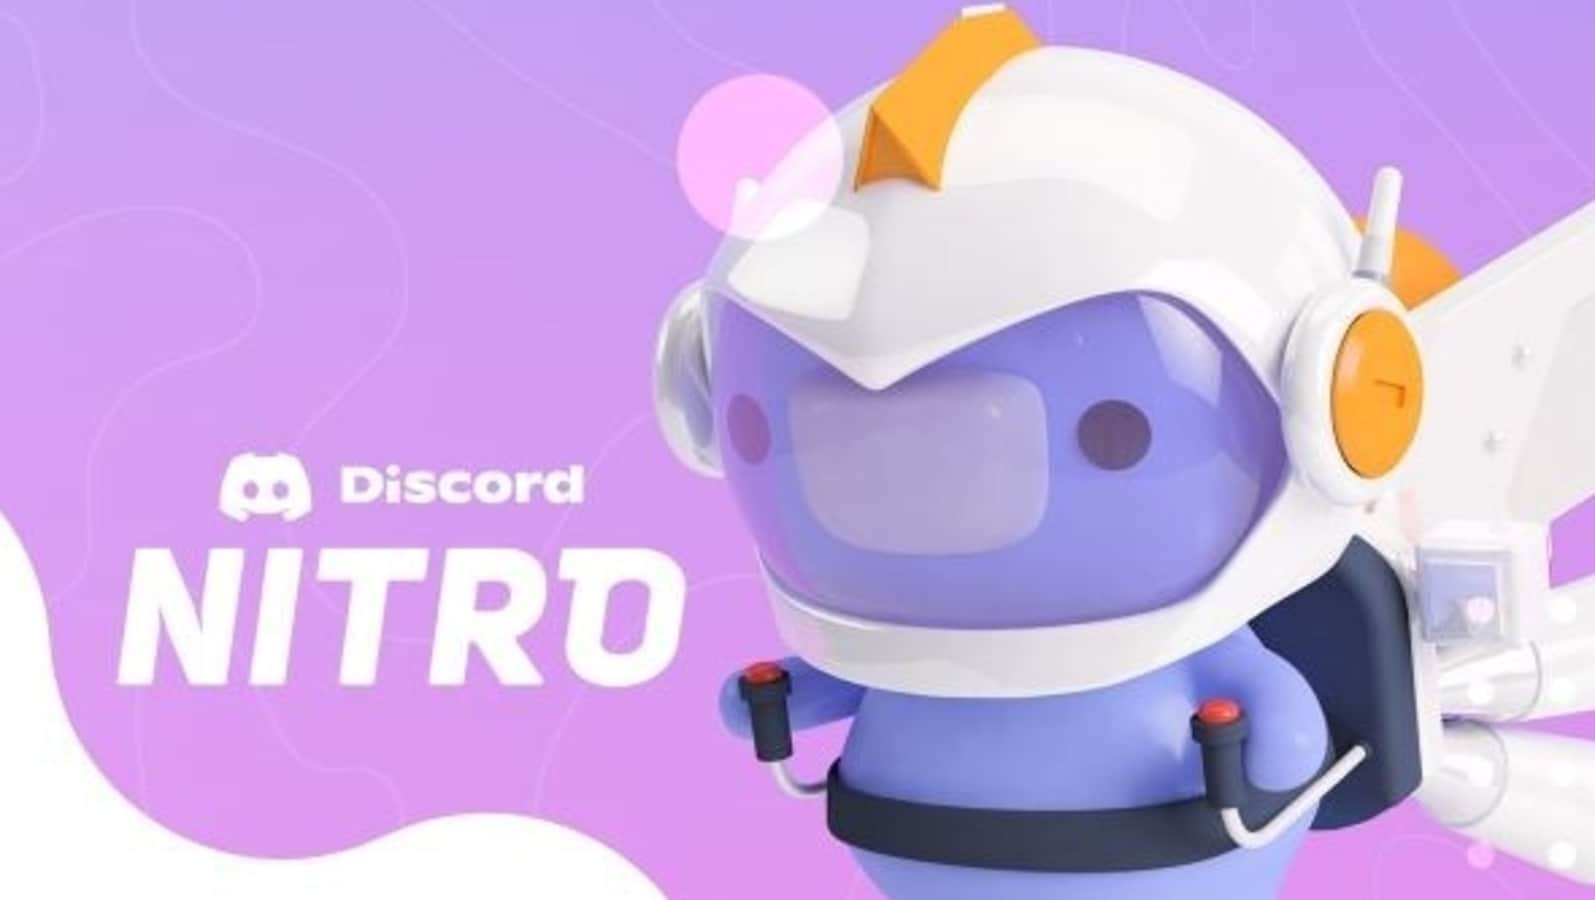 In the Epic Games Store, here's how to download Discord Nitro for free, but there's a deadline